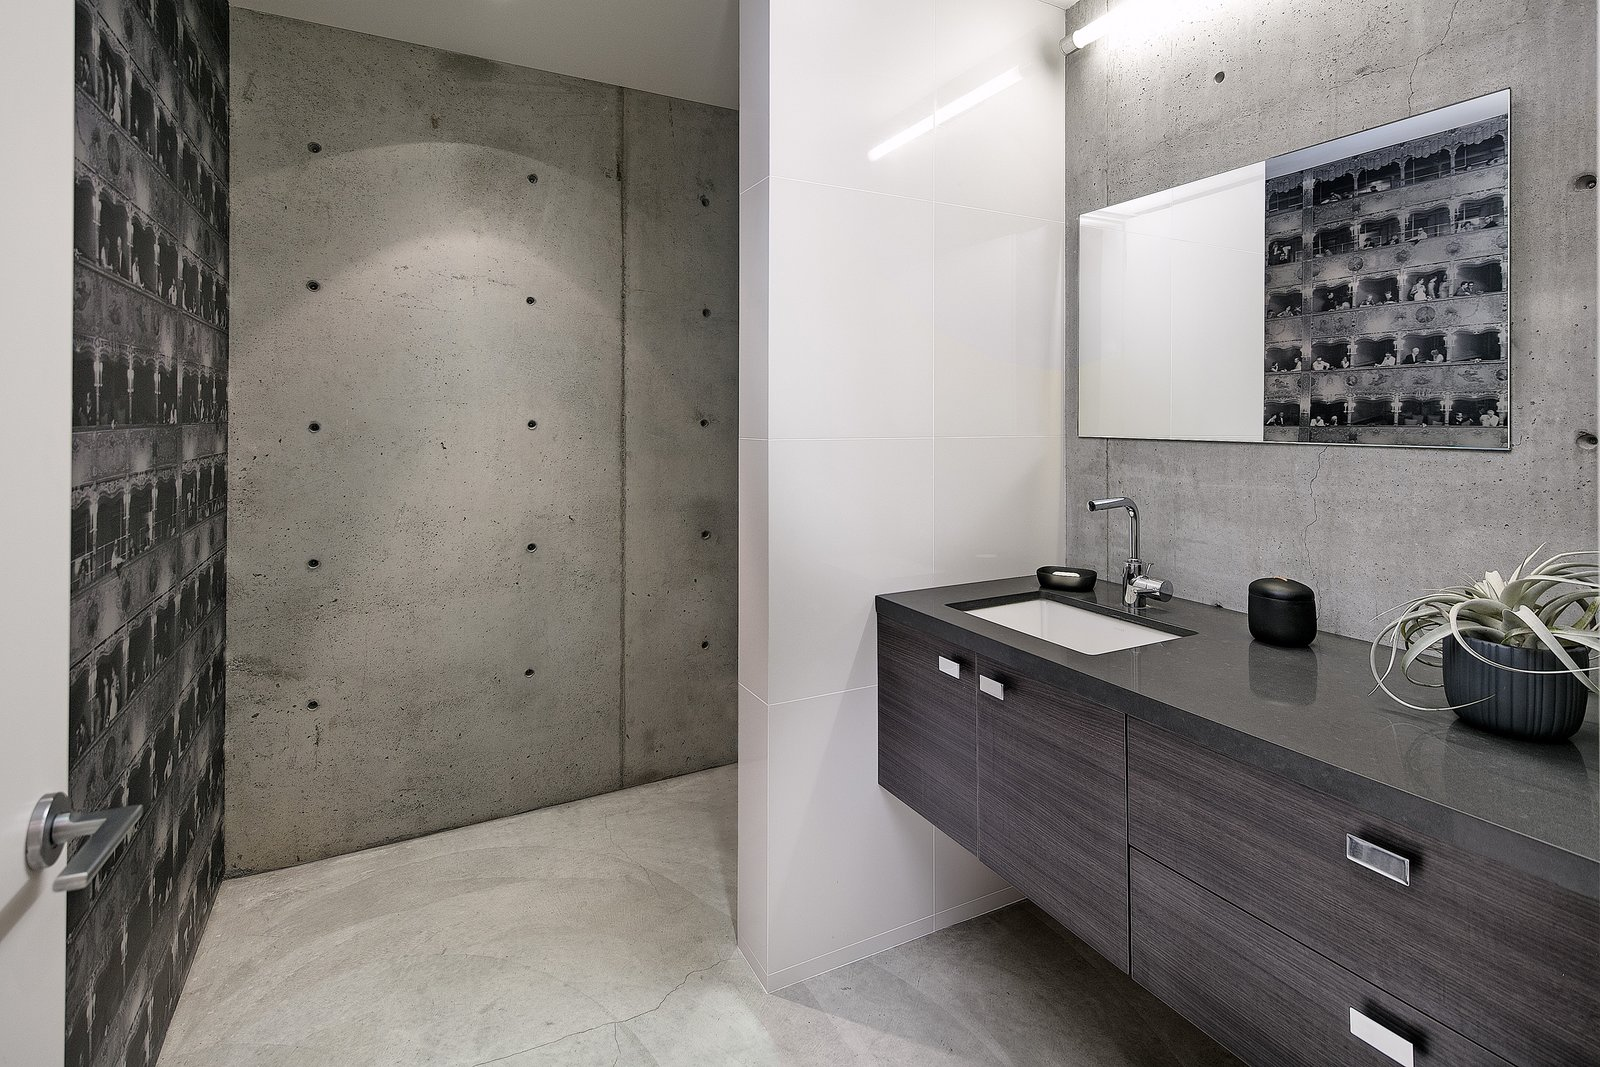 Exposed concrete in the office bathroom compliments the raw materials seen throughout the basement level.   Cohen Residence by Abramson Teiger Architects